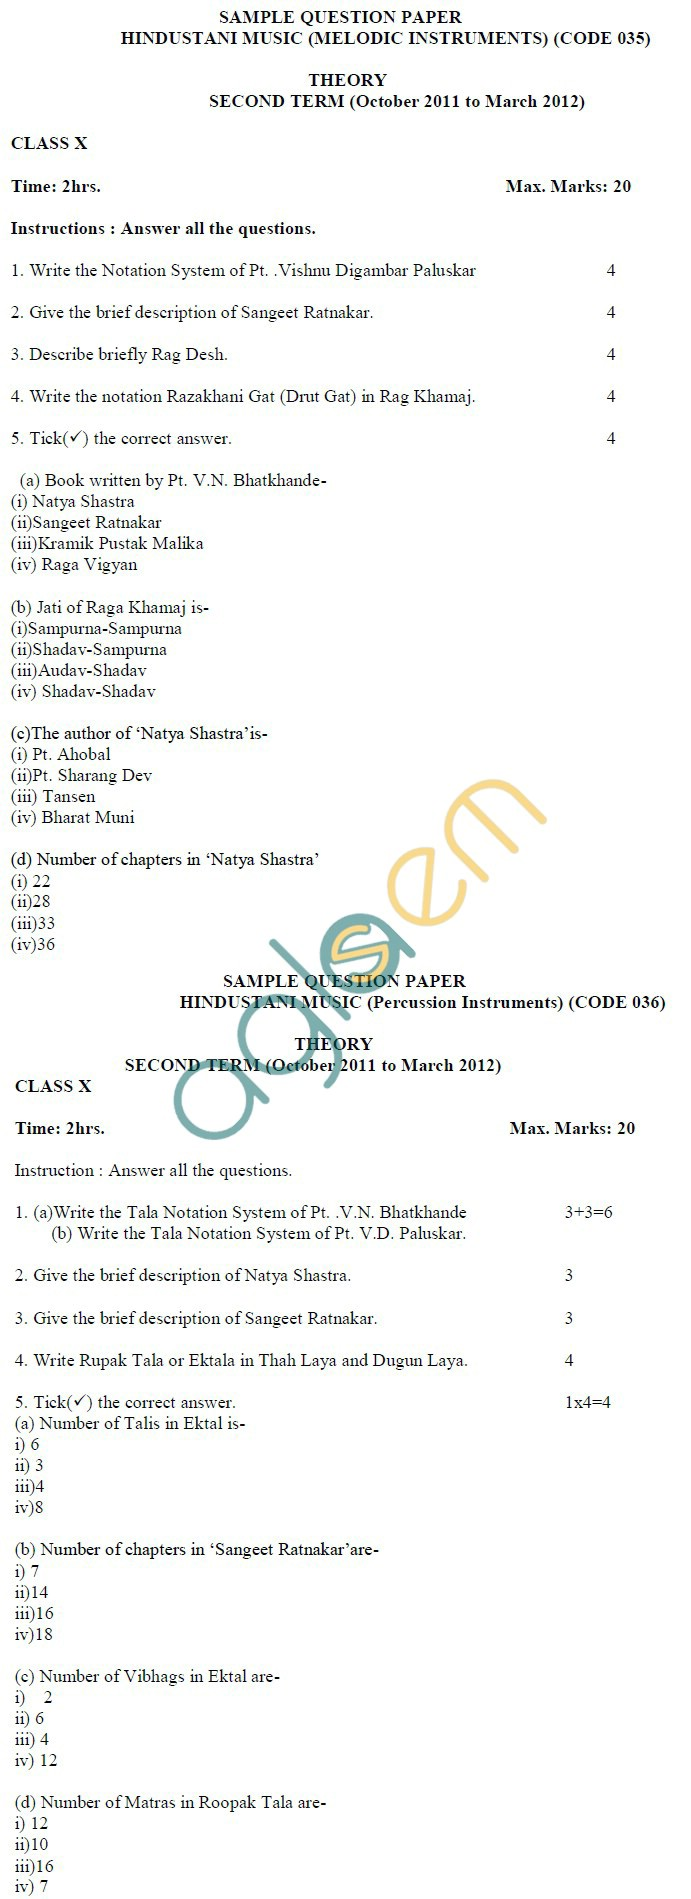 CBSE Class IX & X Sample Papers 2014 (Second Term) Hindustani Music